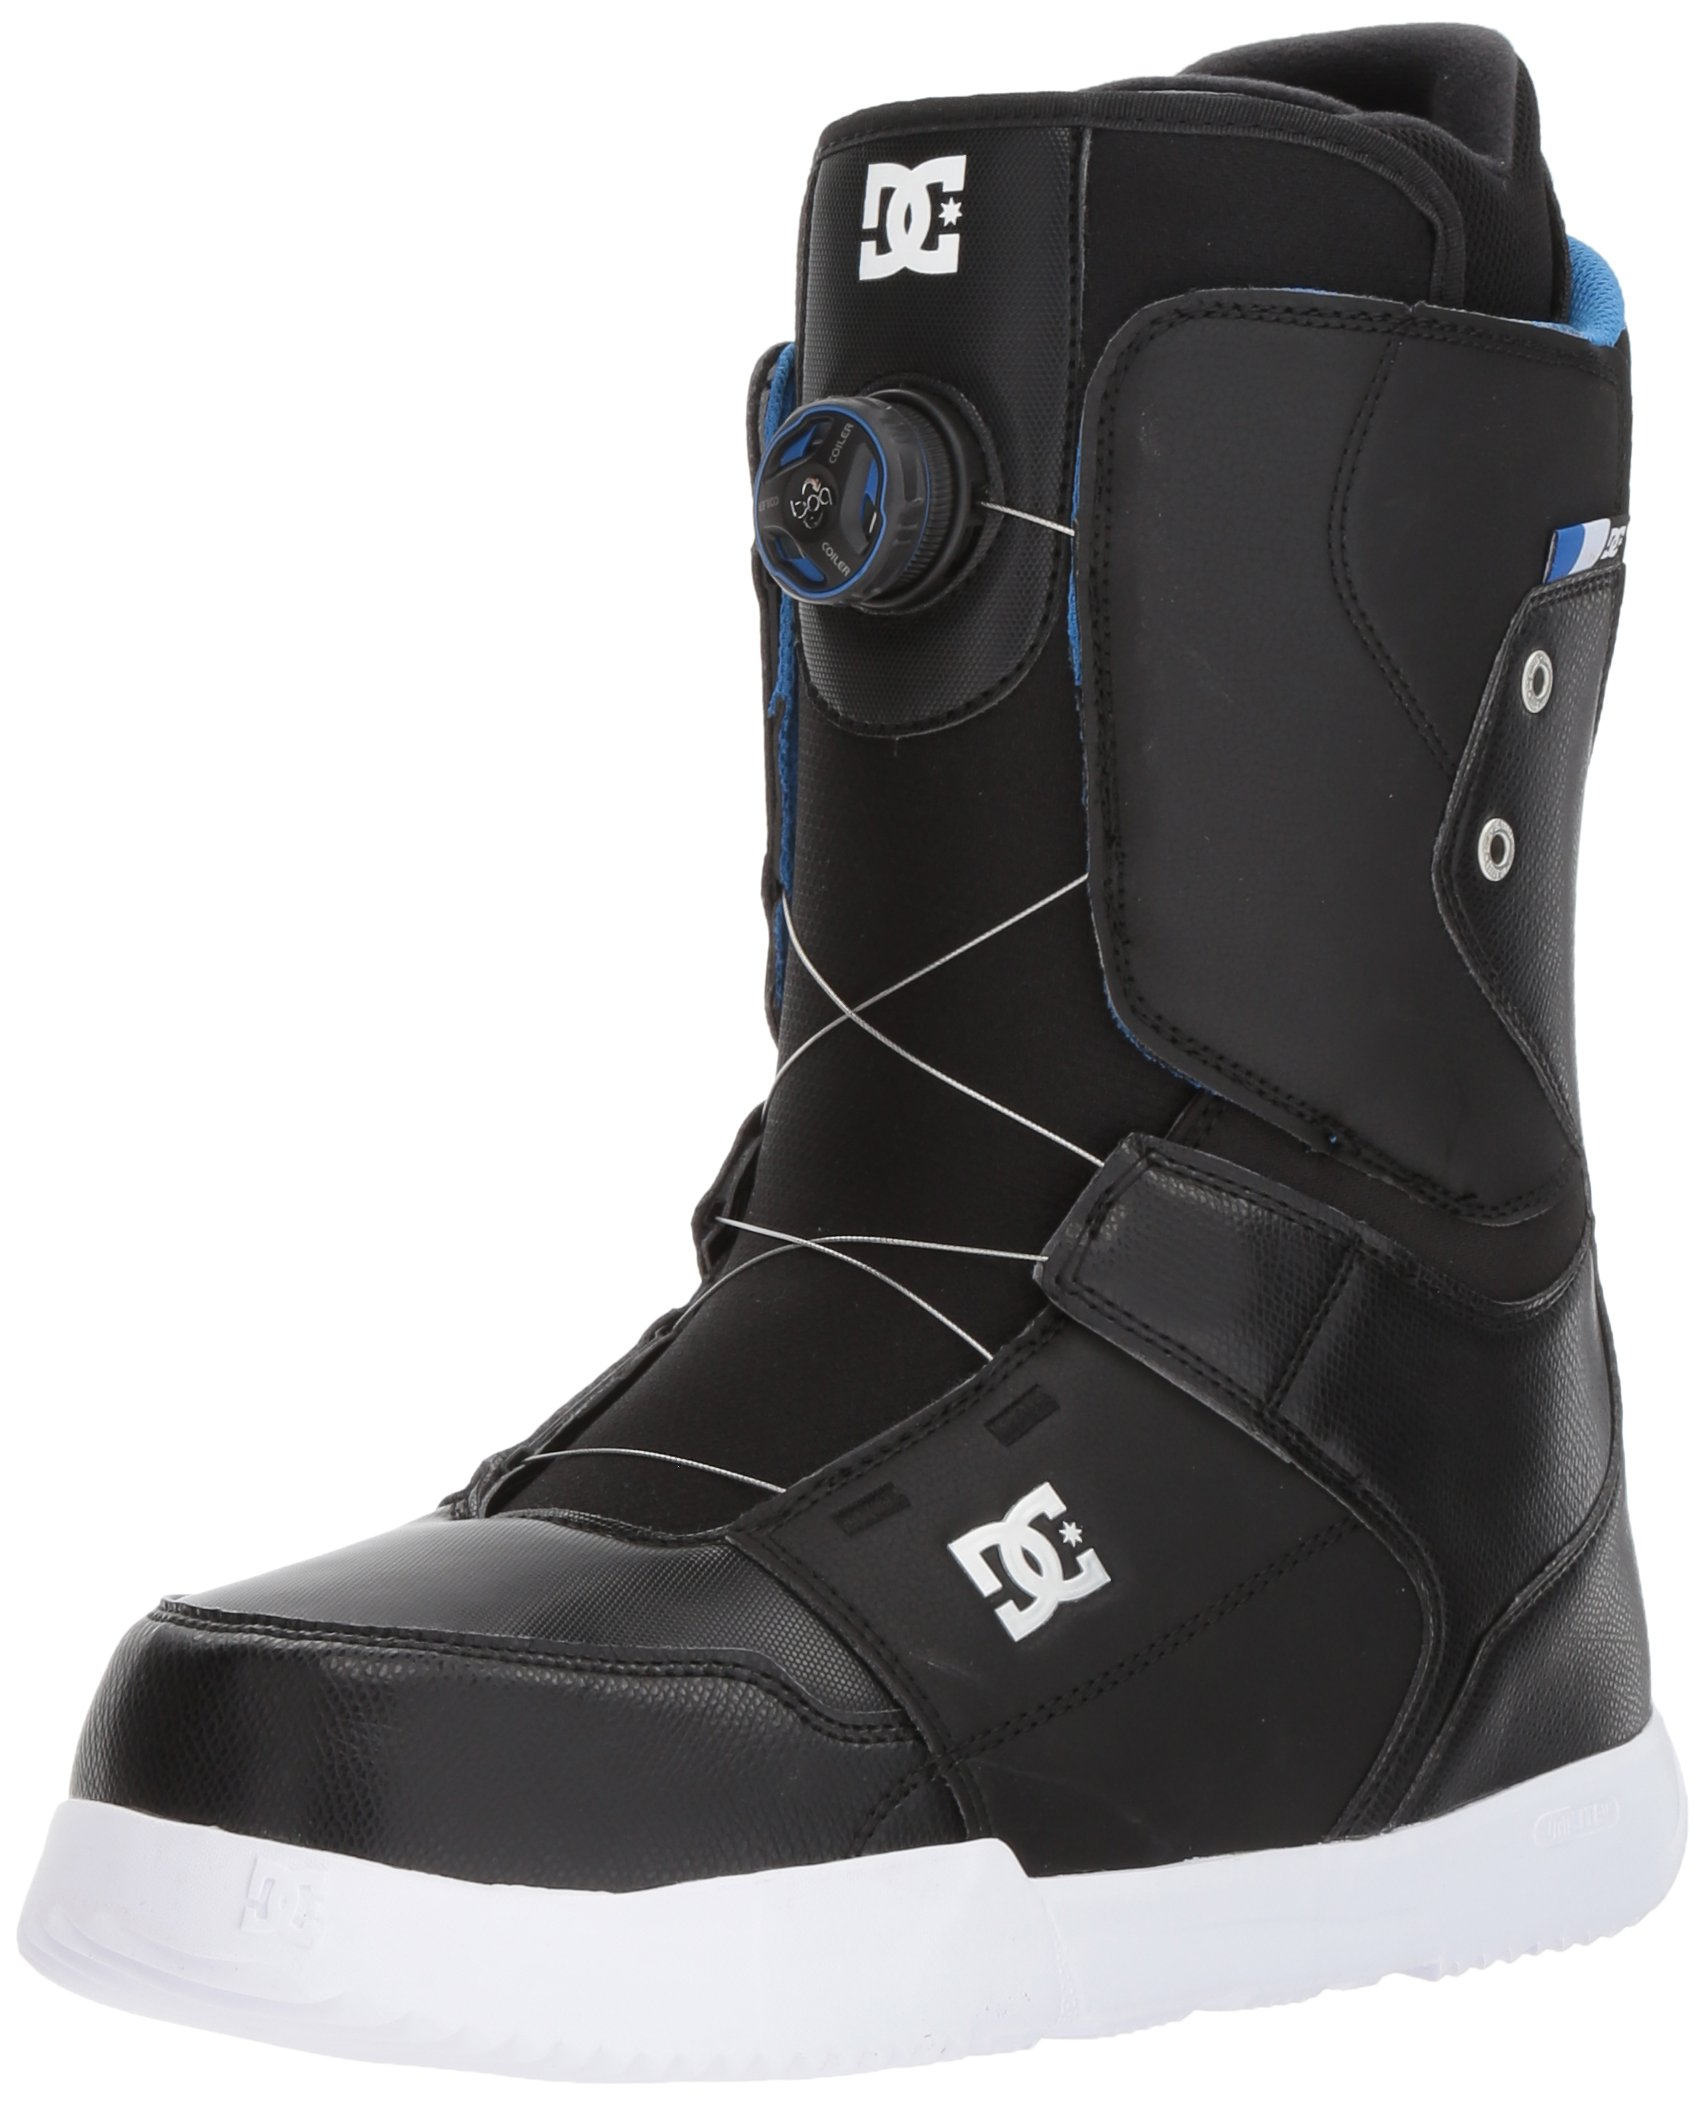 DC Men's Scout Boa Snowboard Boots, Black, 7.5 by DC